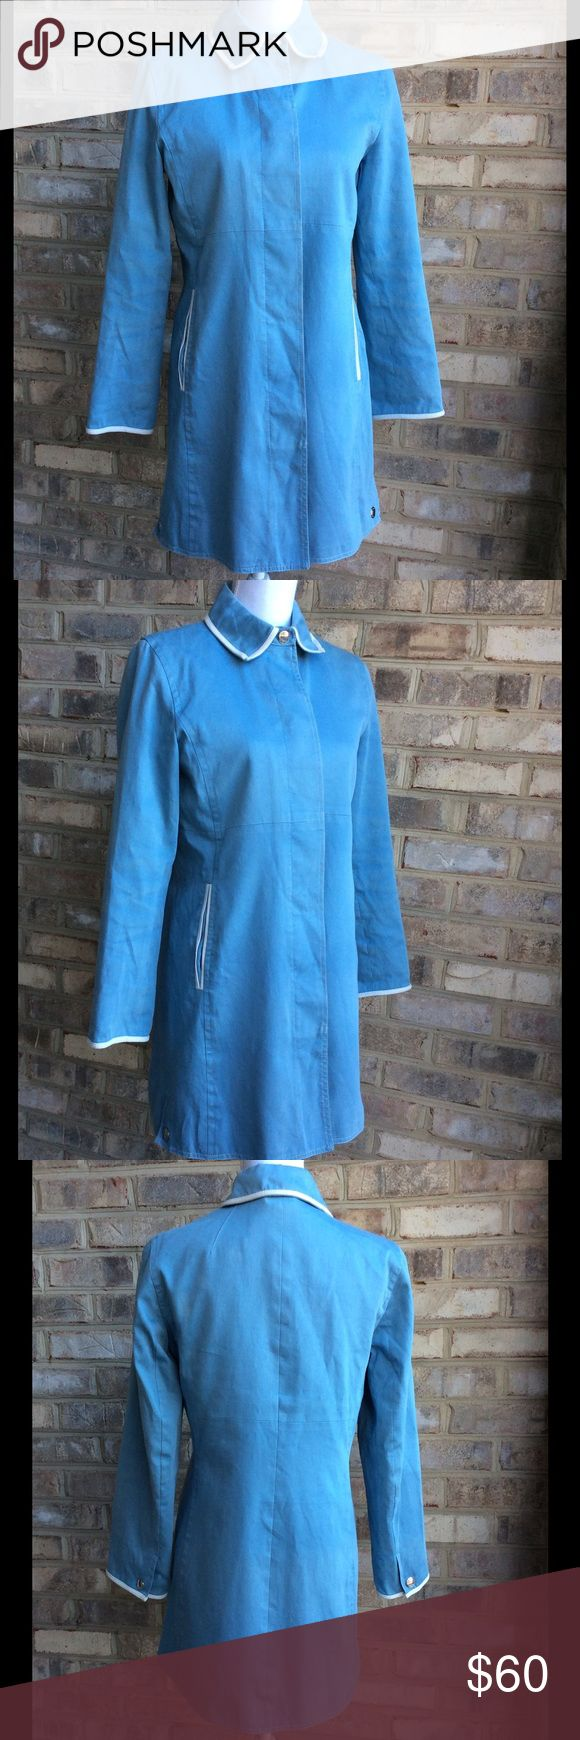 Coach - Baby blue raincoat - sz 8 Good used condition. The only sign of wear is slight discoloration in the sleeves and in the back. Nothing that jumps at you. Underarm to underarm is 19, top to bottom is 33. Coach Jackets & Coats Trench Coats